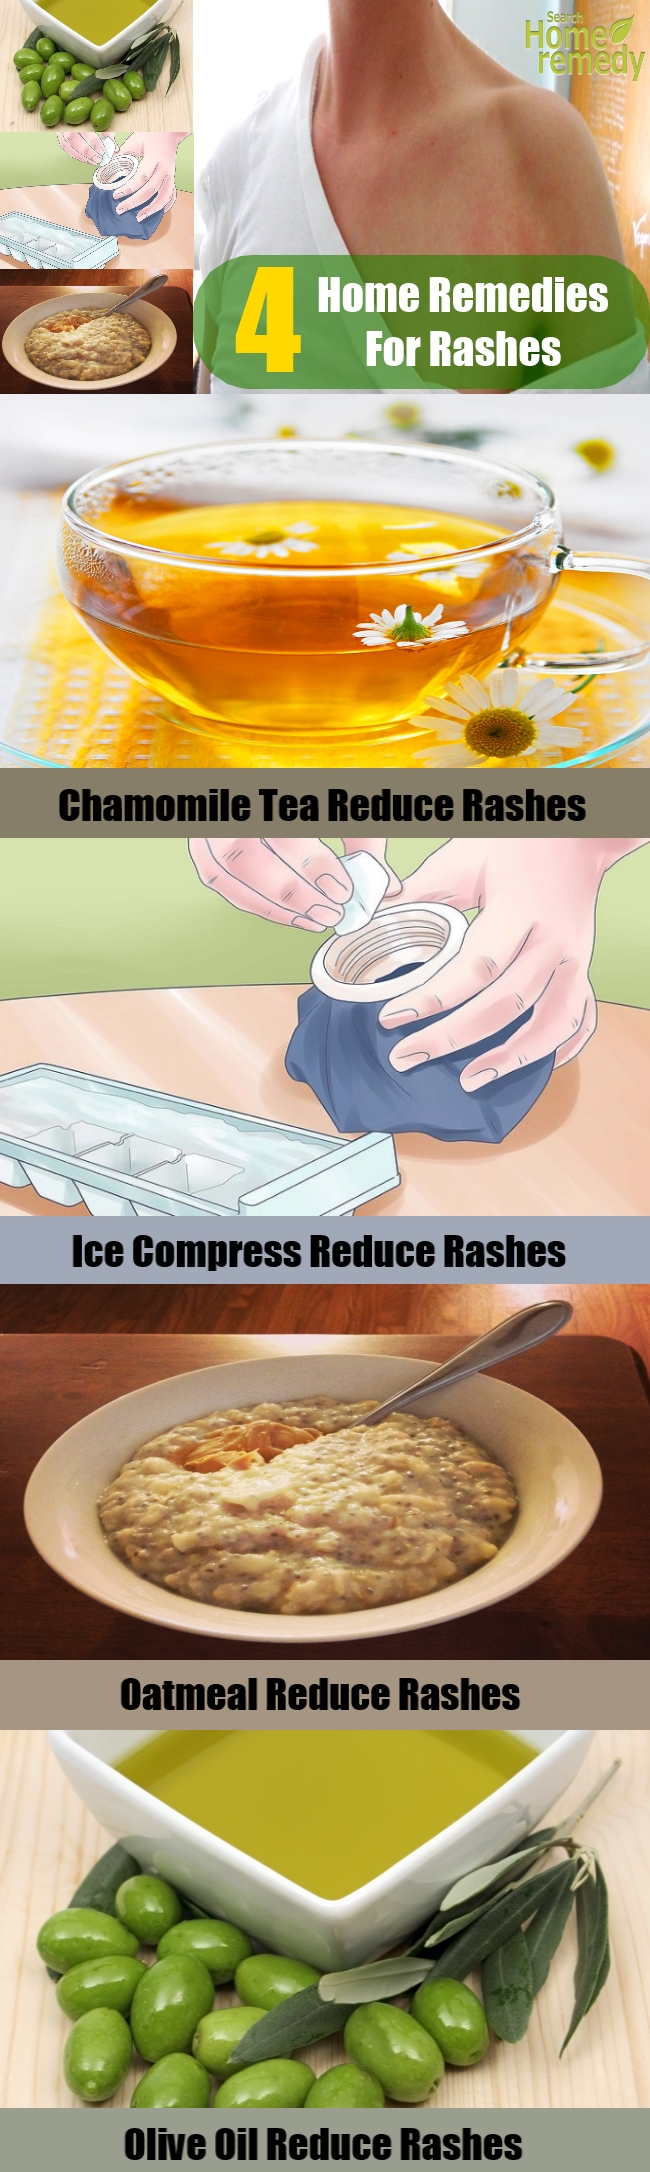 4 Home Remedies For Rashes